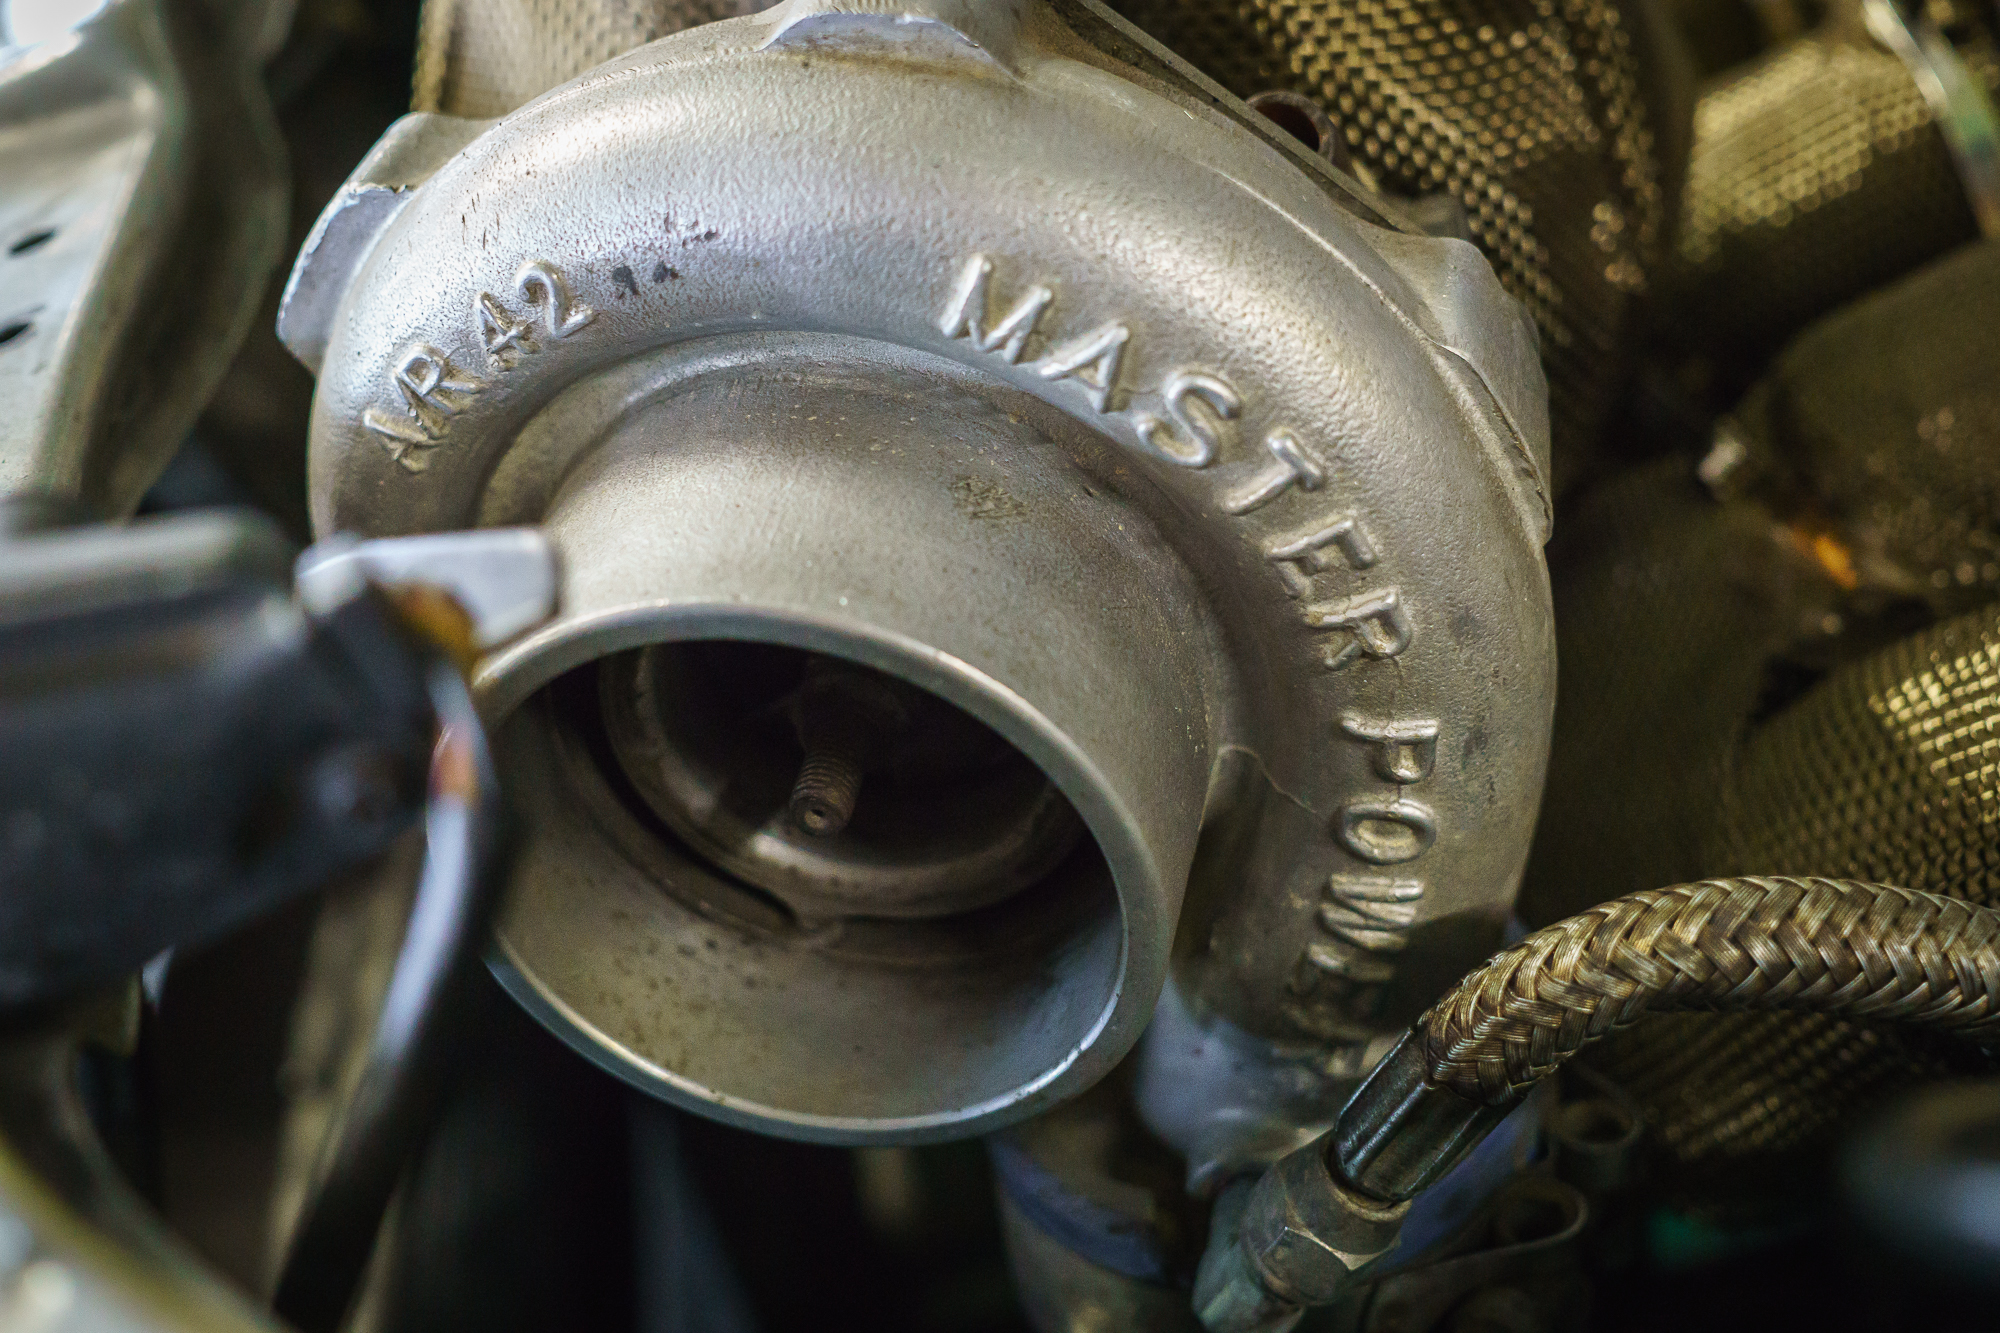 A turbocharger without a filter